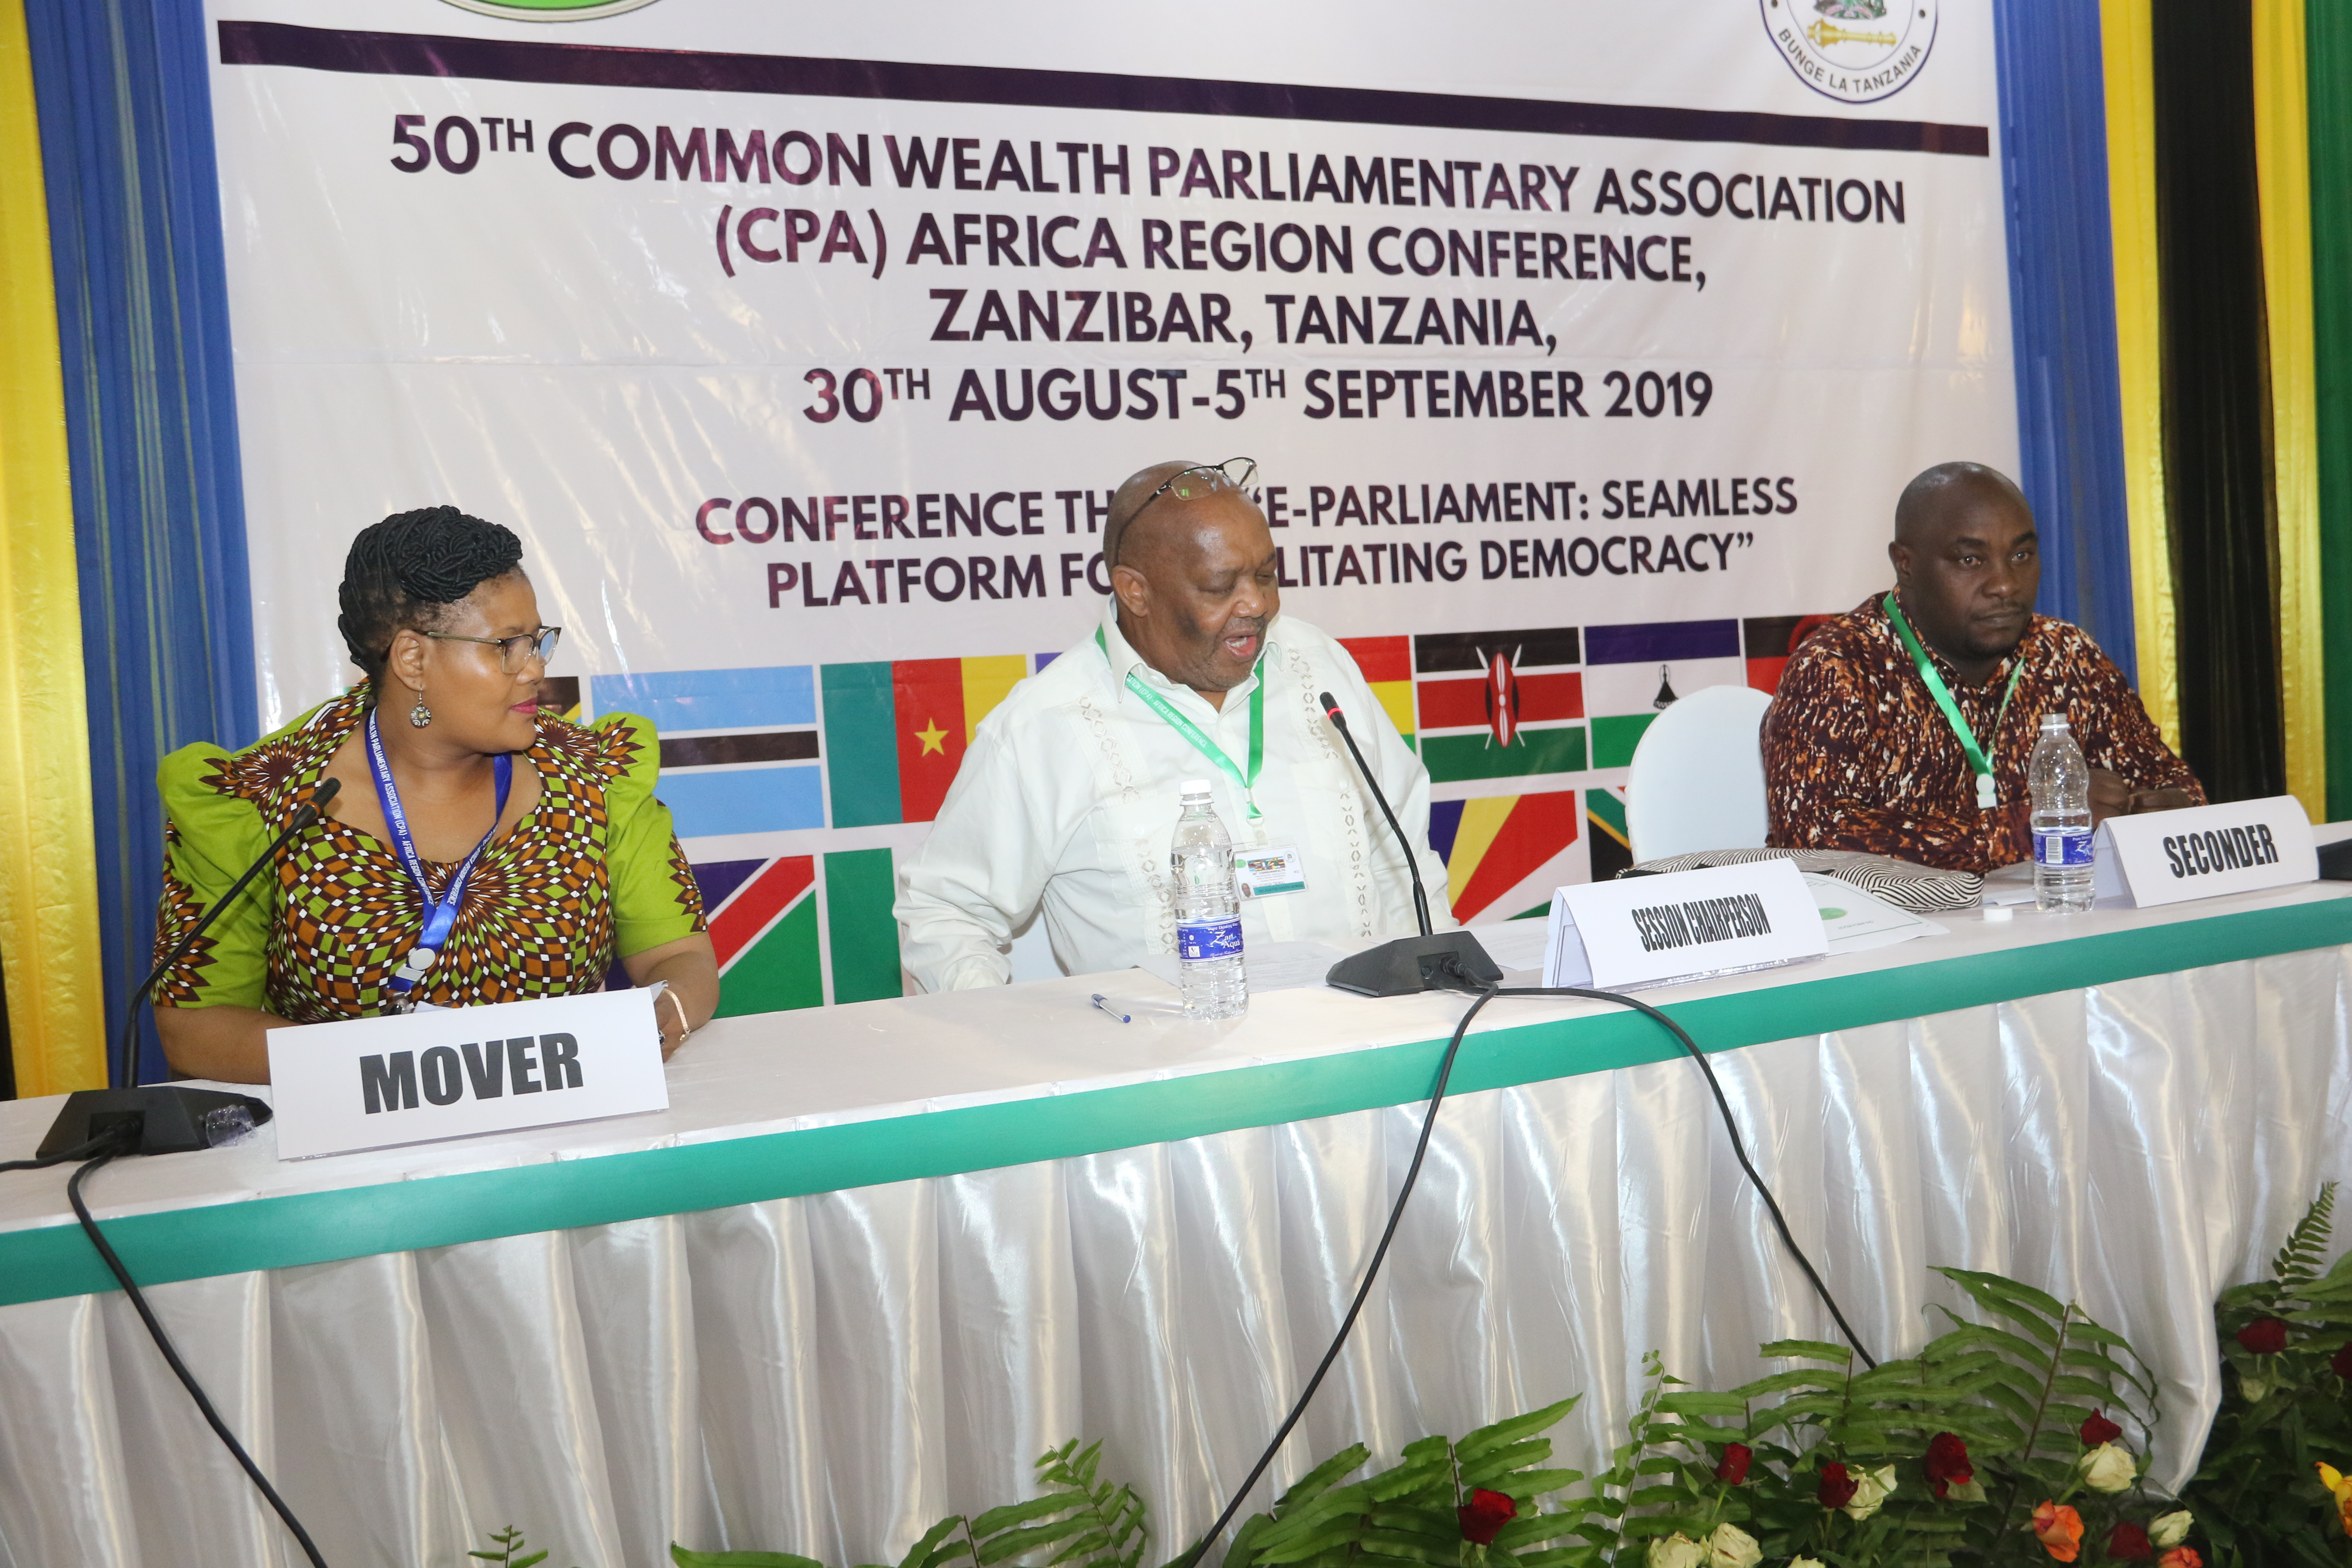 50th Commonwealth Parliamentary Association (CPA)